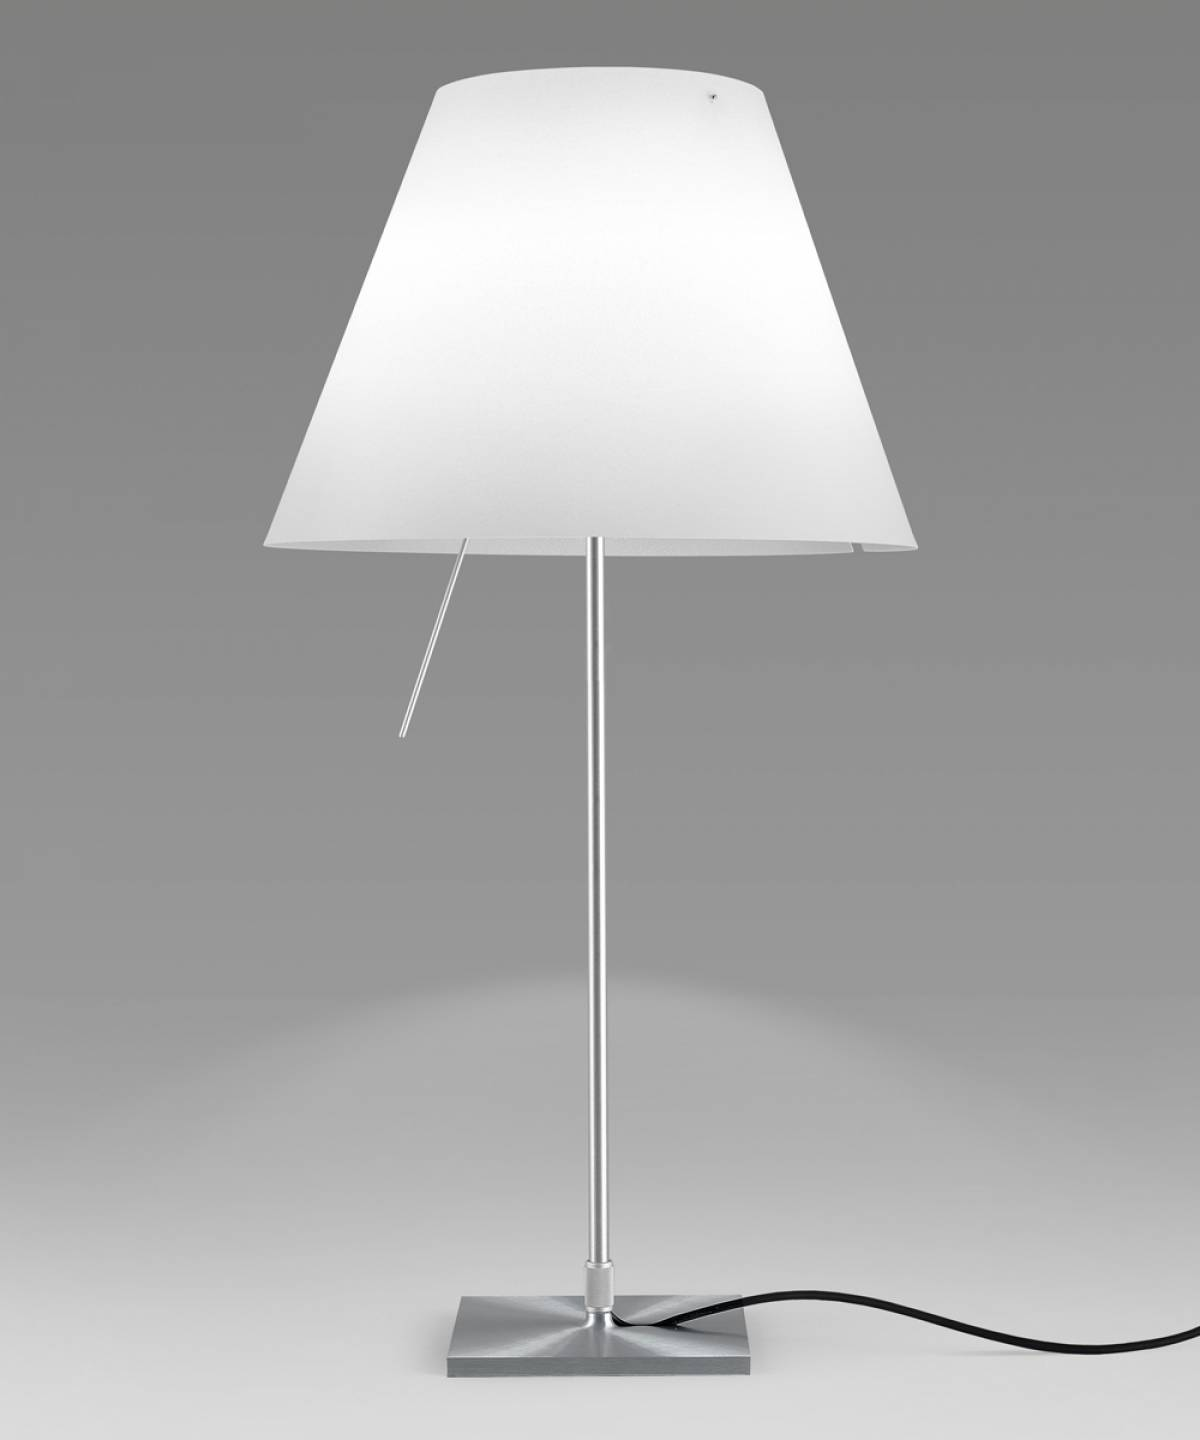 6 Costanza table lamp Luceplan